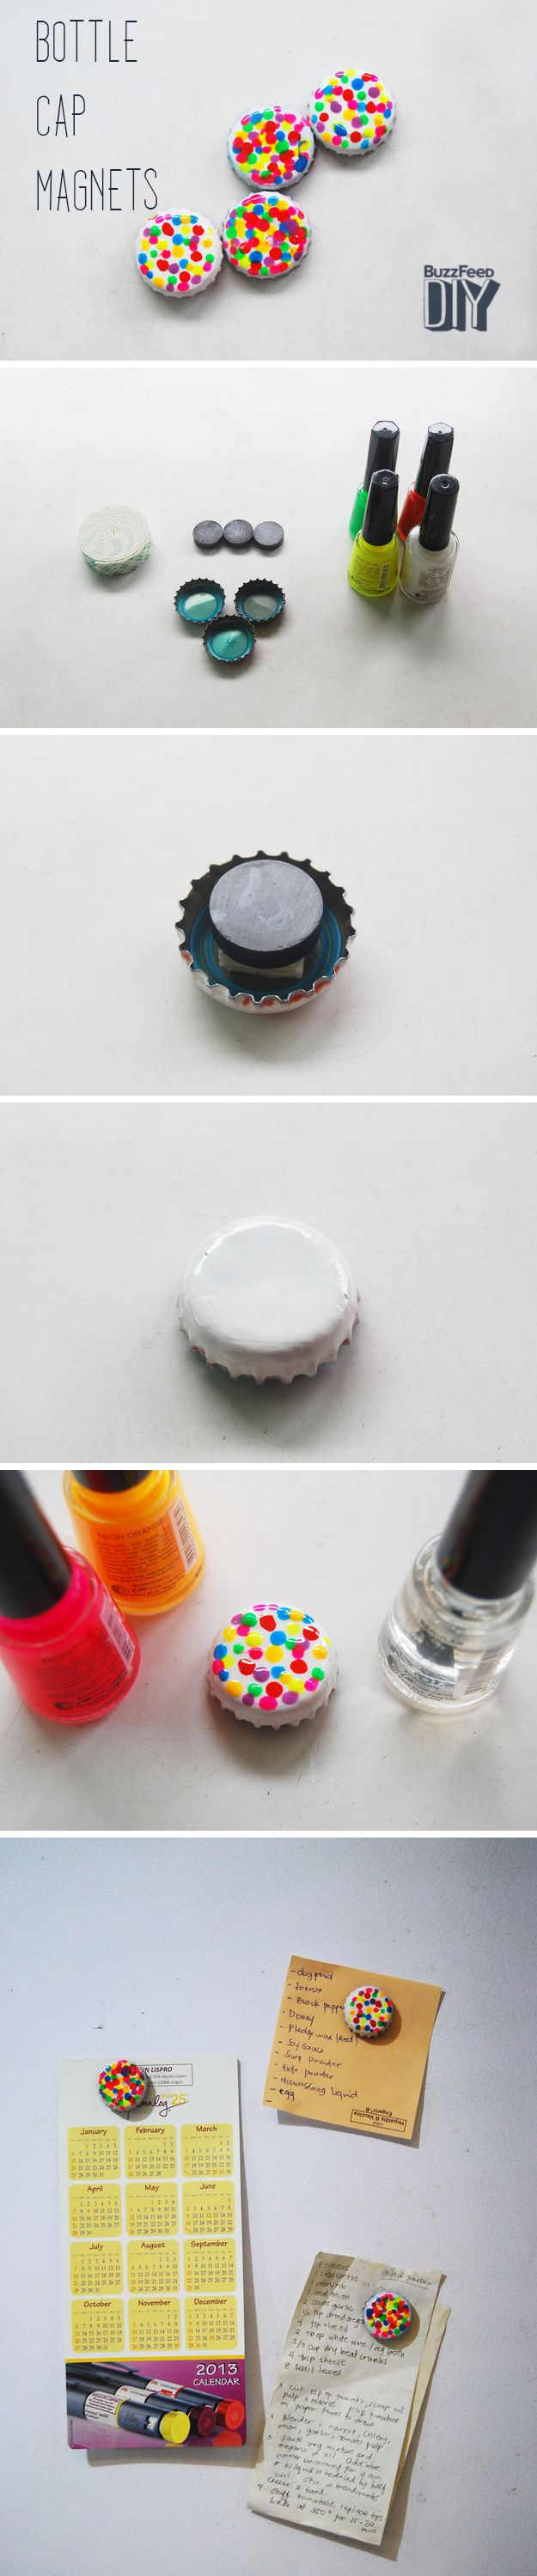 Bottle Cap Magnets | How To Use Nail Polish In Completely Unexpected Ways